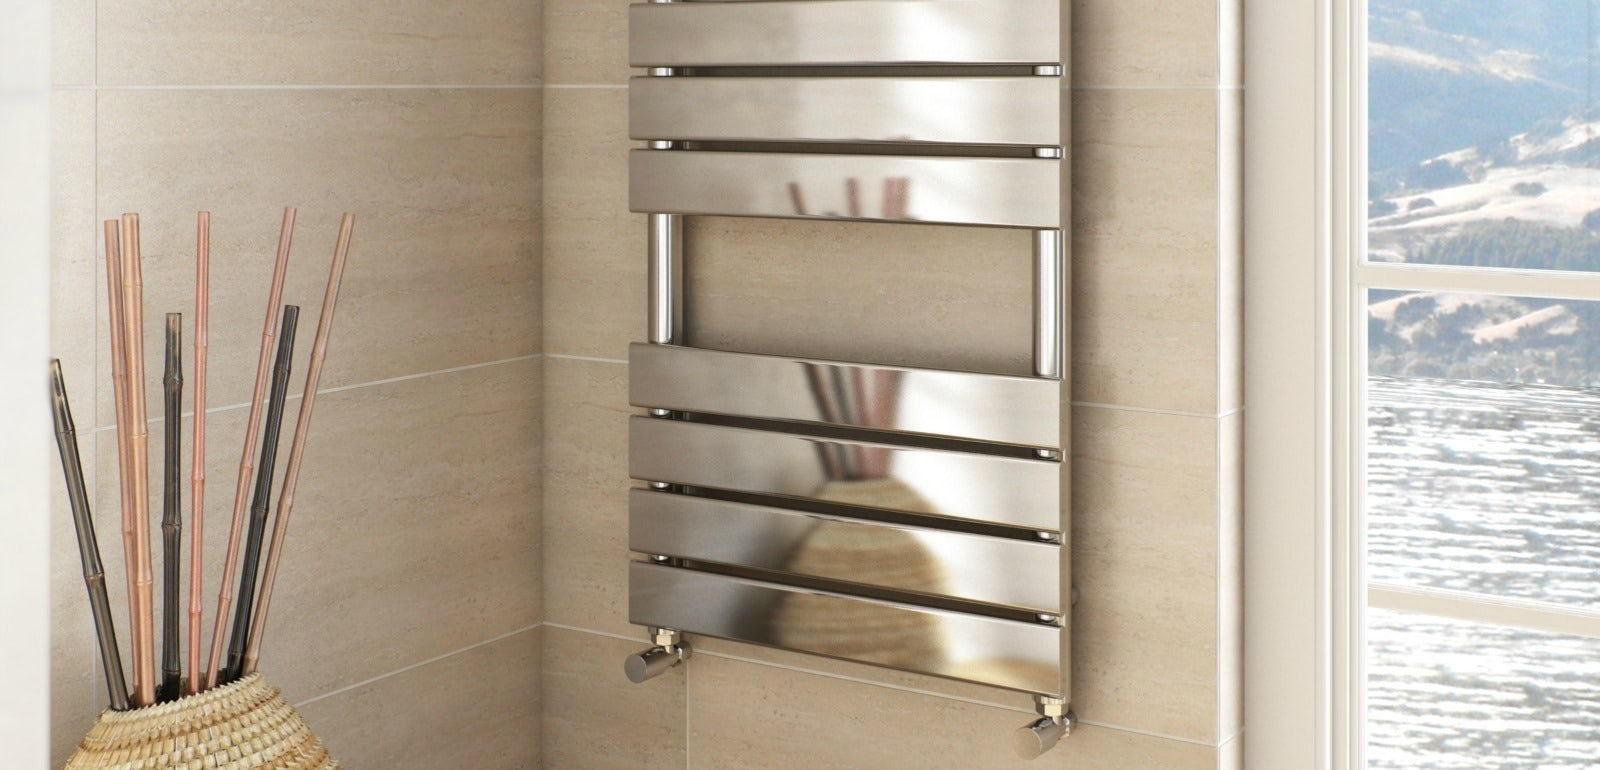 heated towel rails the ultimate winter bathroom accessory - Bathroom Accessories Towel Rail